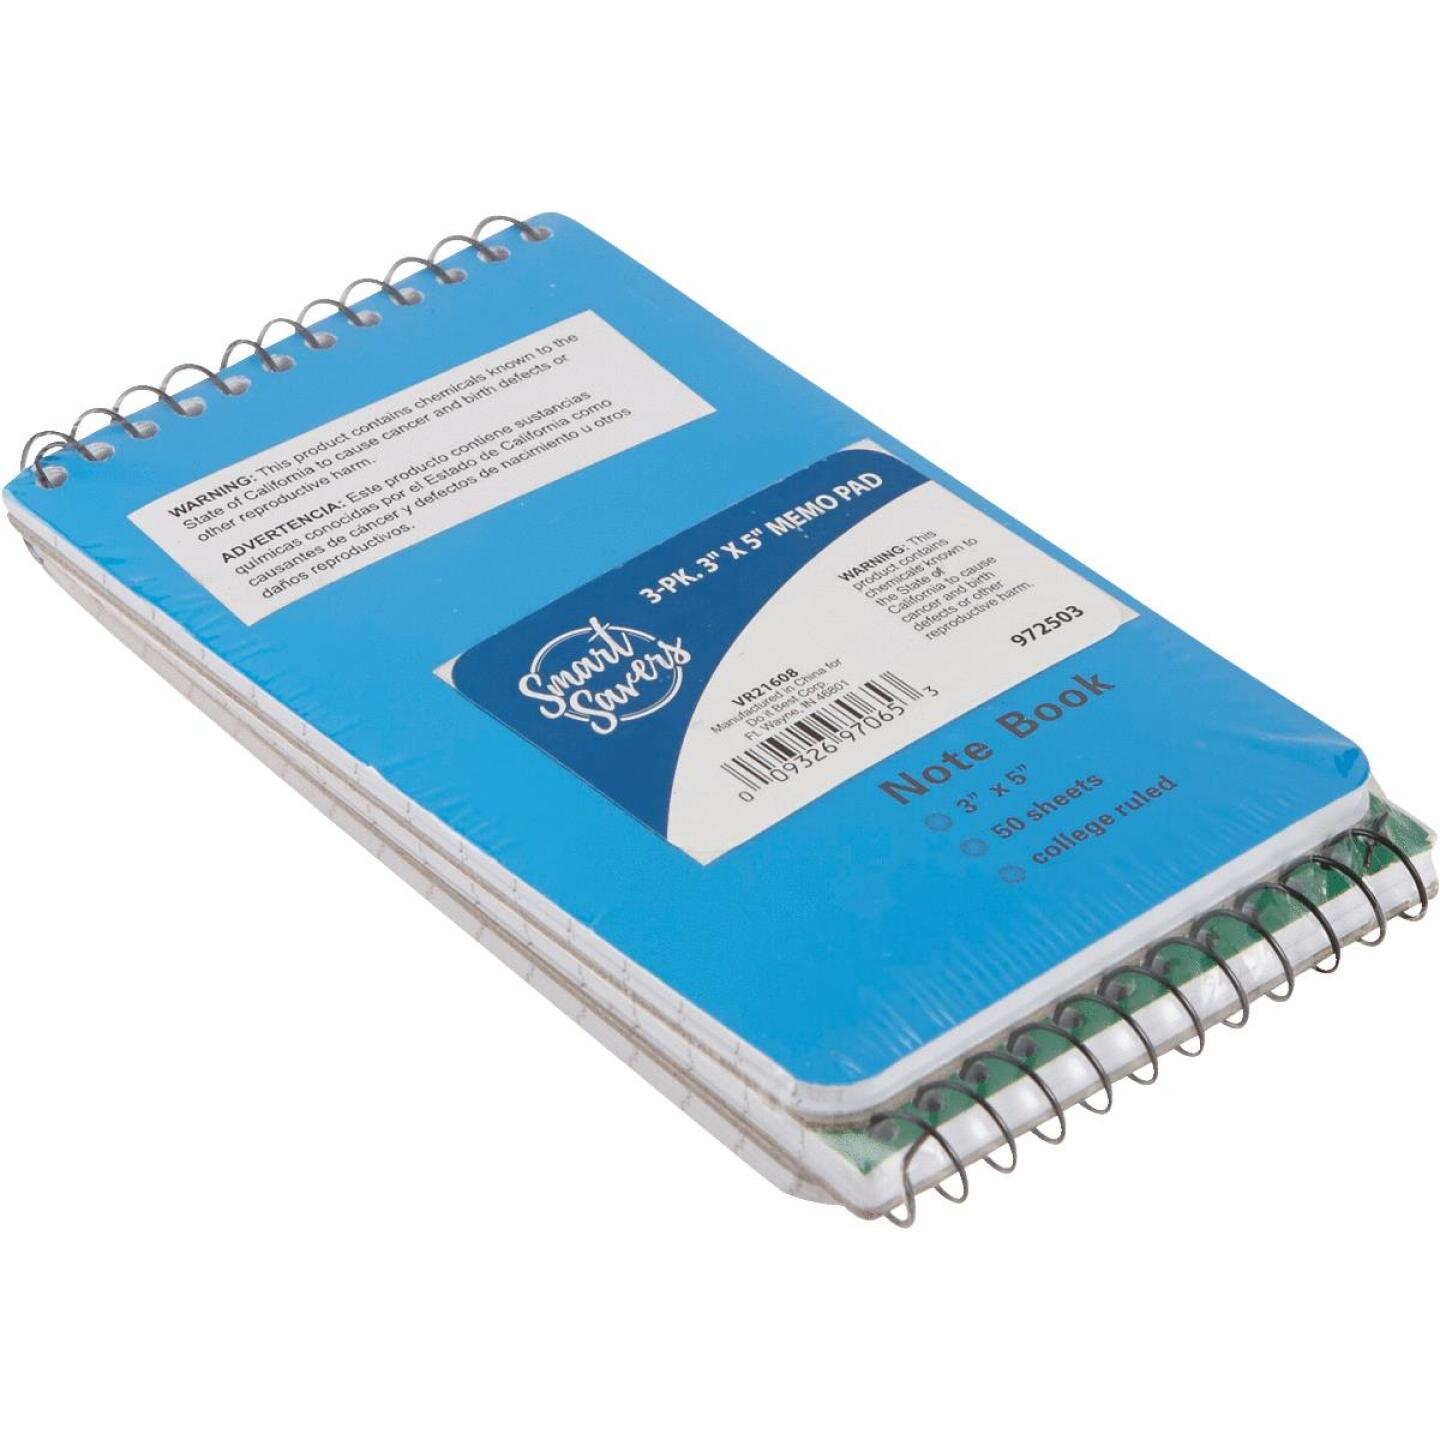 Smart Savers 3 In. x 5 In. White 50-Sheet Top Spiral Bound Memo Pad (3-Pack) Image 2